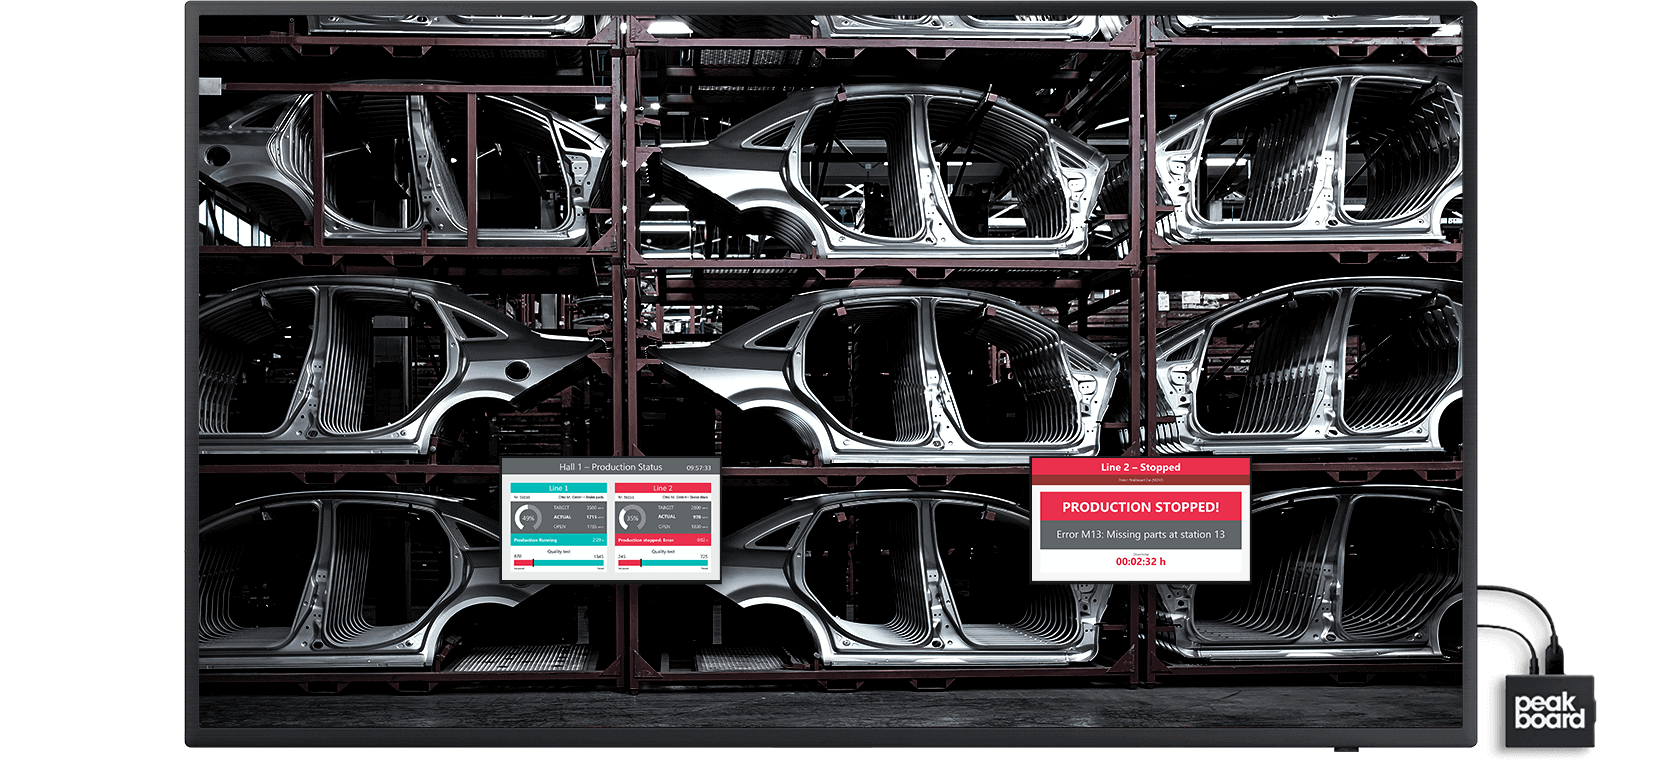 The dashboard shows relevant key figures in the automotive industry for monitoring and managing the production process with Peakboard.